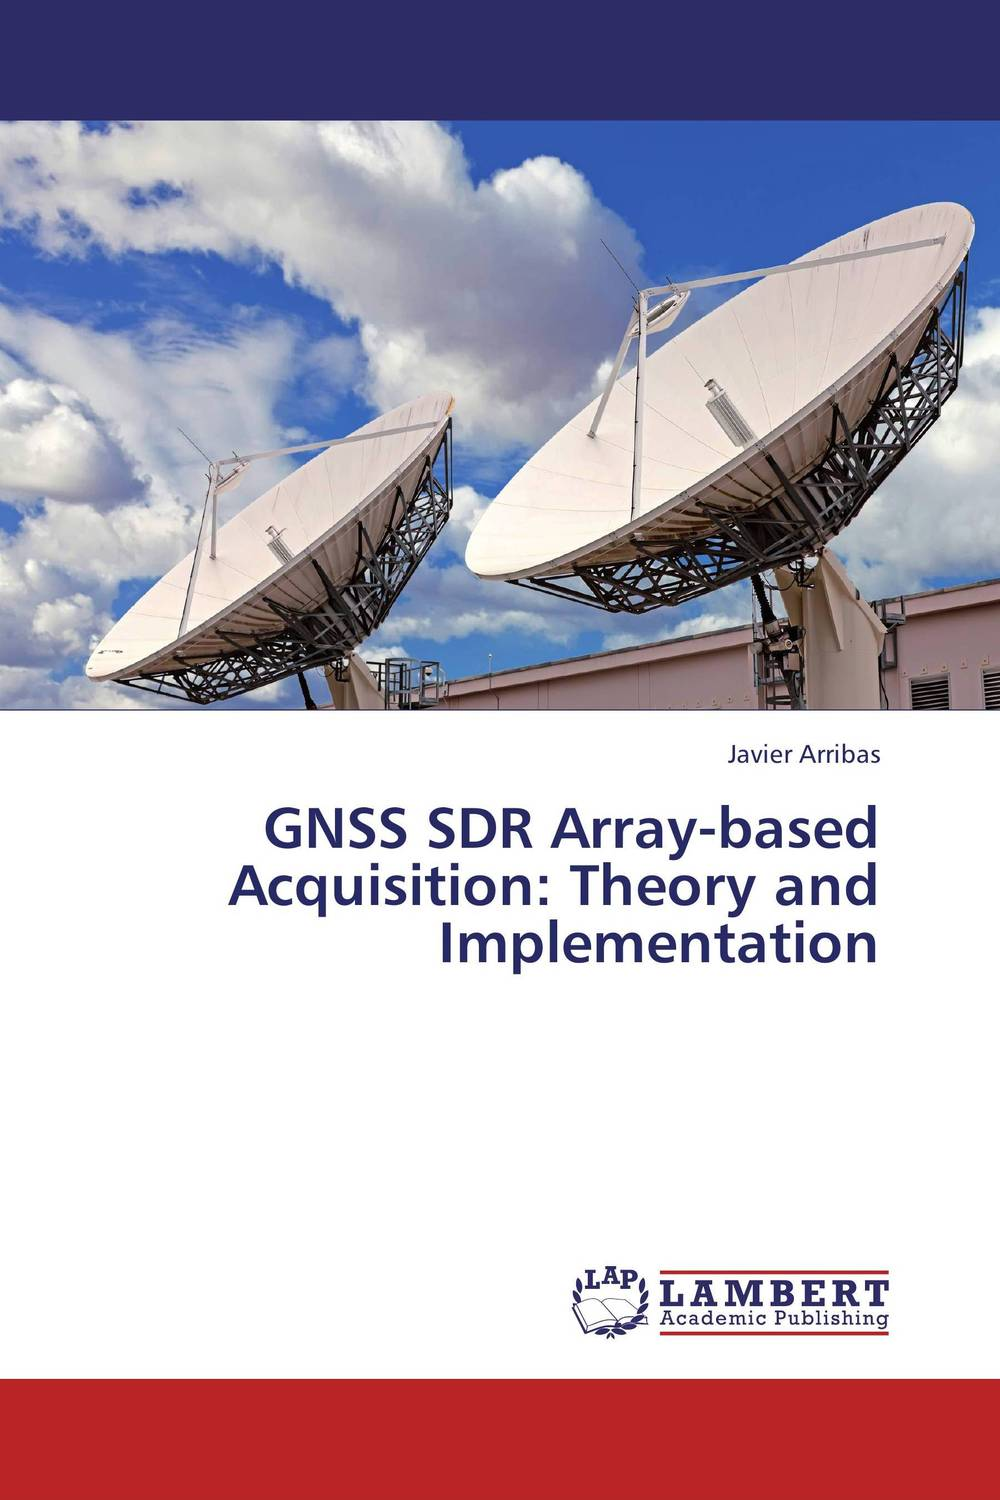 GNSS SDR Array-based Acquisition: Theory and Implementation autonomy theory and implementation